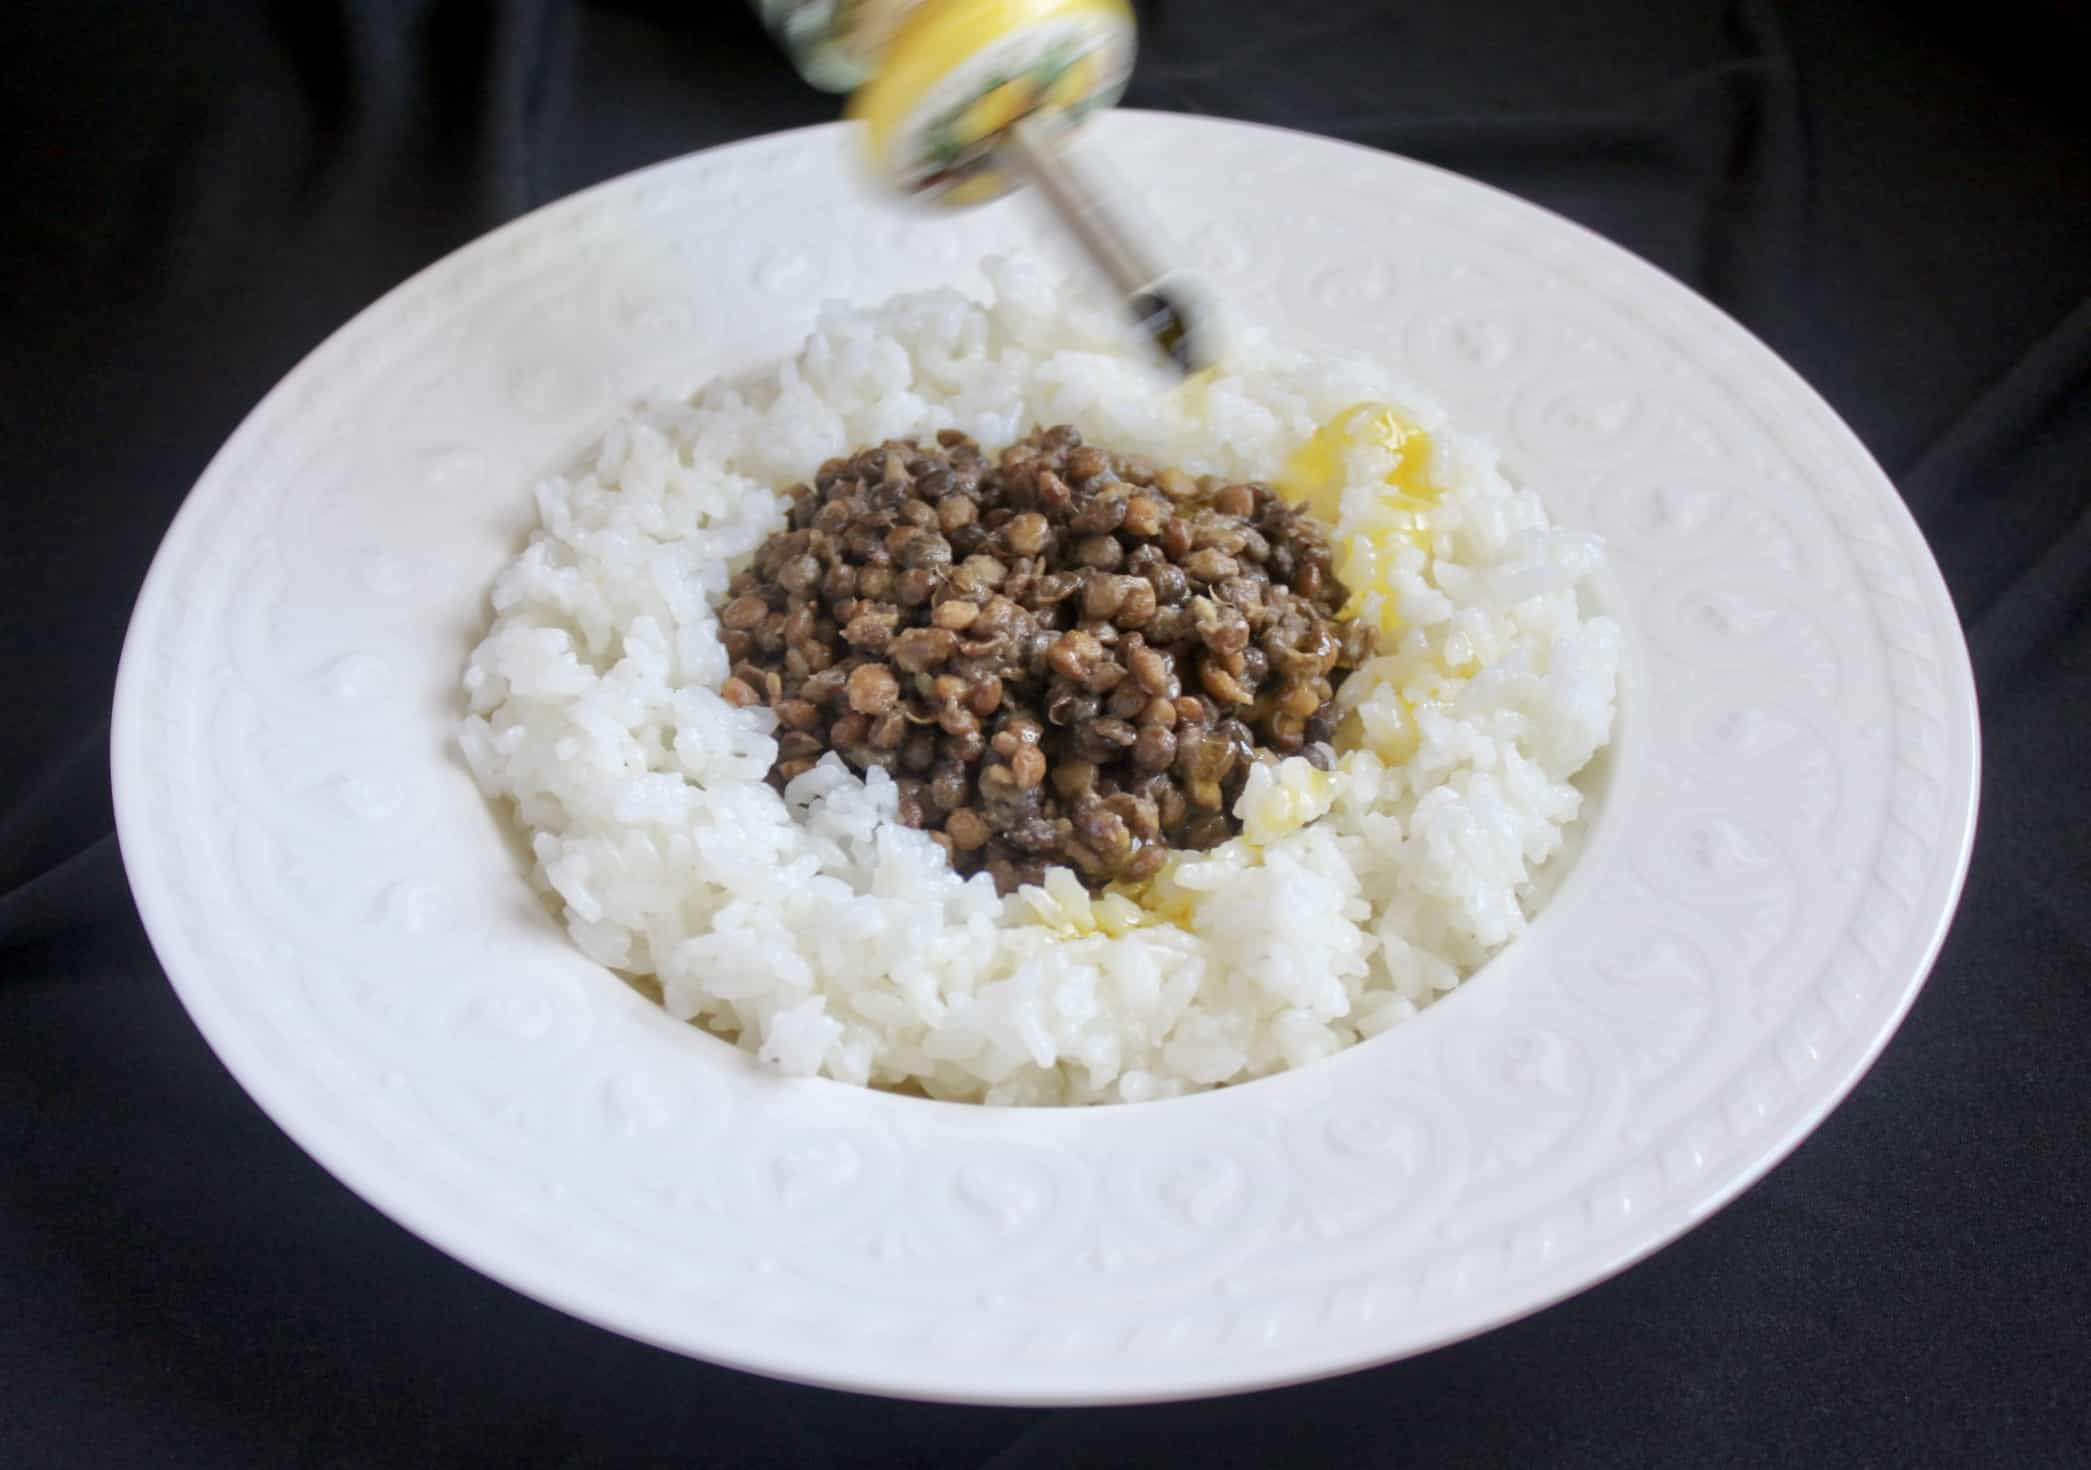 drizzling oil on lentils and rice